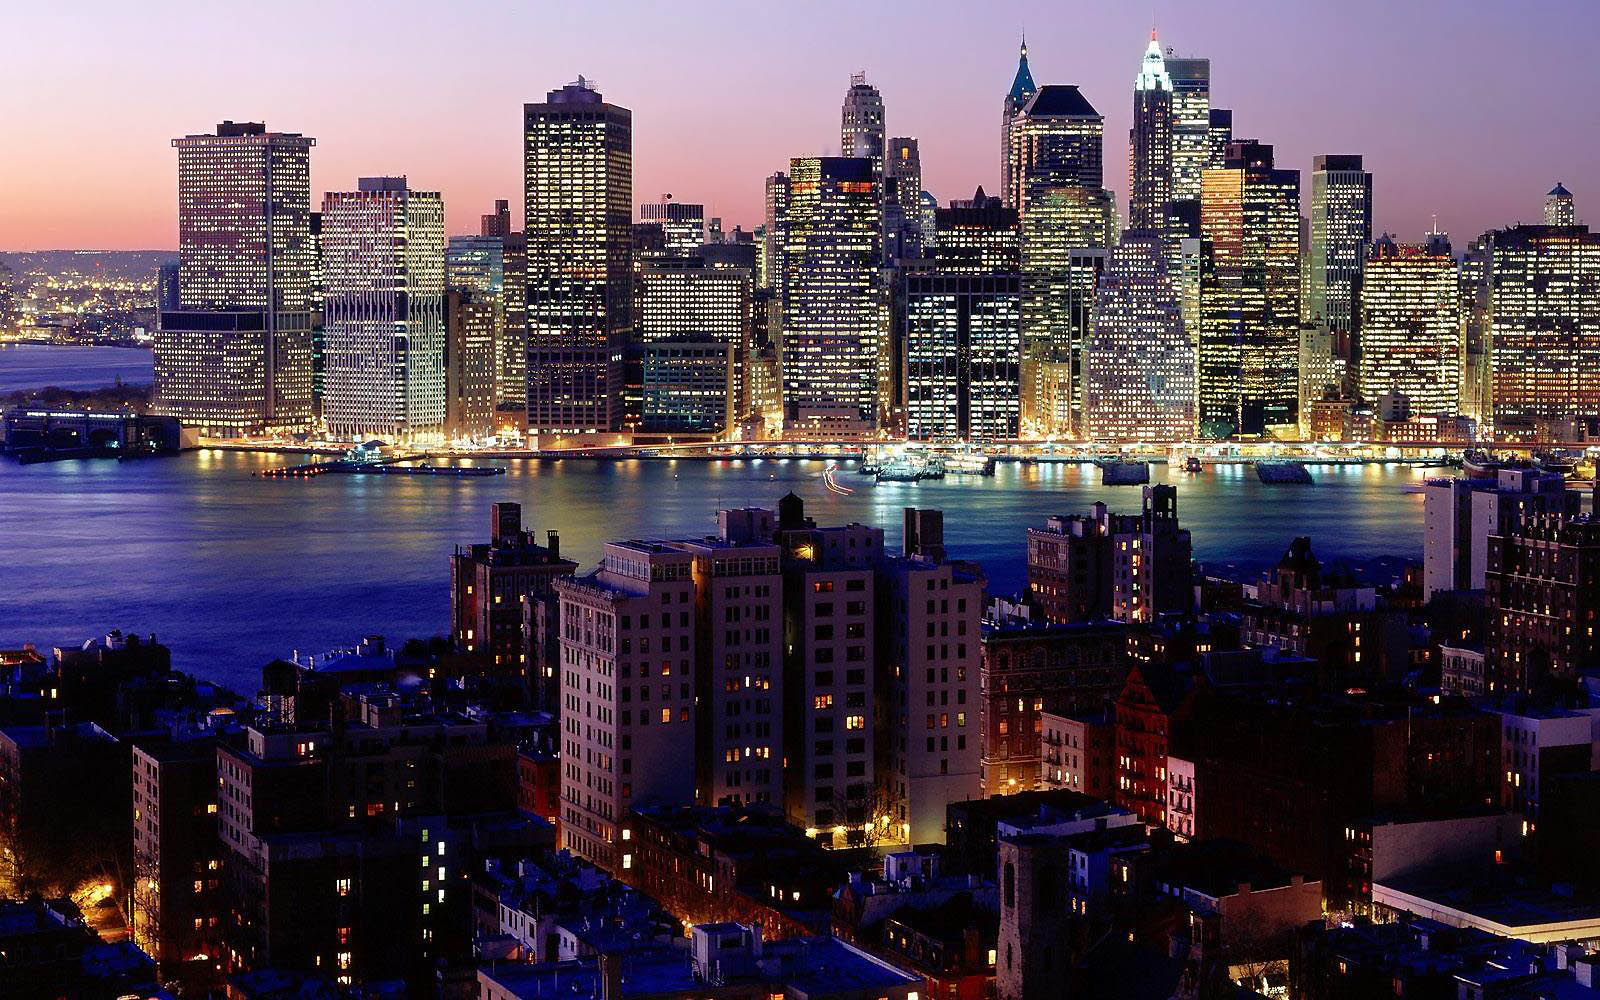 New York Wallpapers Hd Desktop Backgrounds Images And Pictures 1600x1000